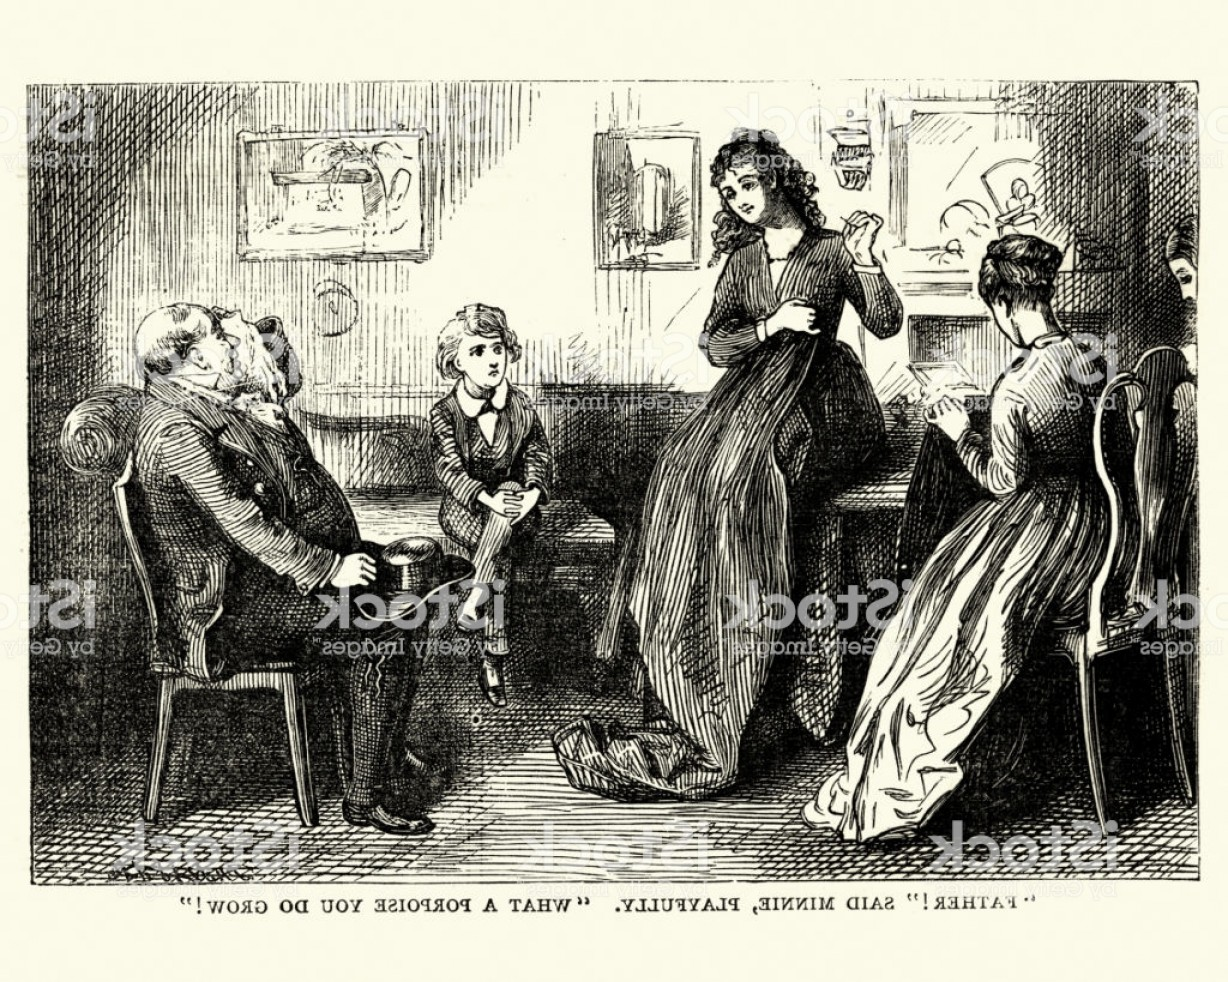 Minnie Vector Black And White: David Copperfield Charles Dickens Father Said Minnie Playfully Gm